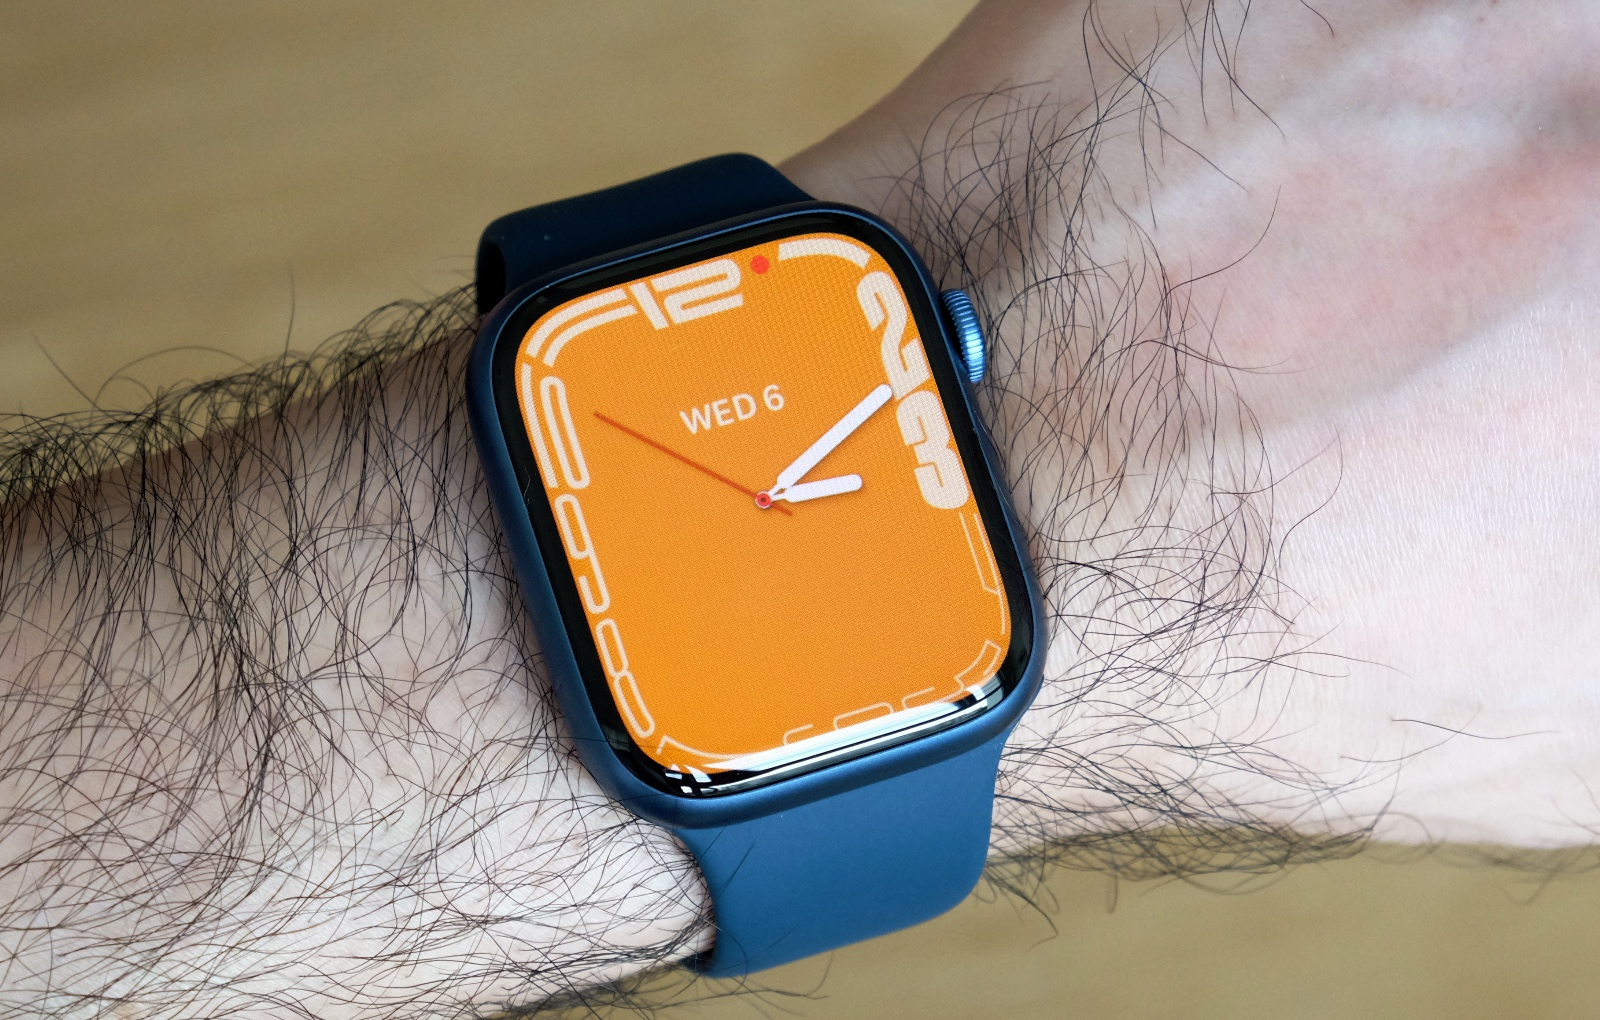 Despite the slightly larger cases, the Series 7 watches fit just as comfortably.